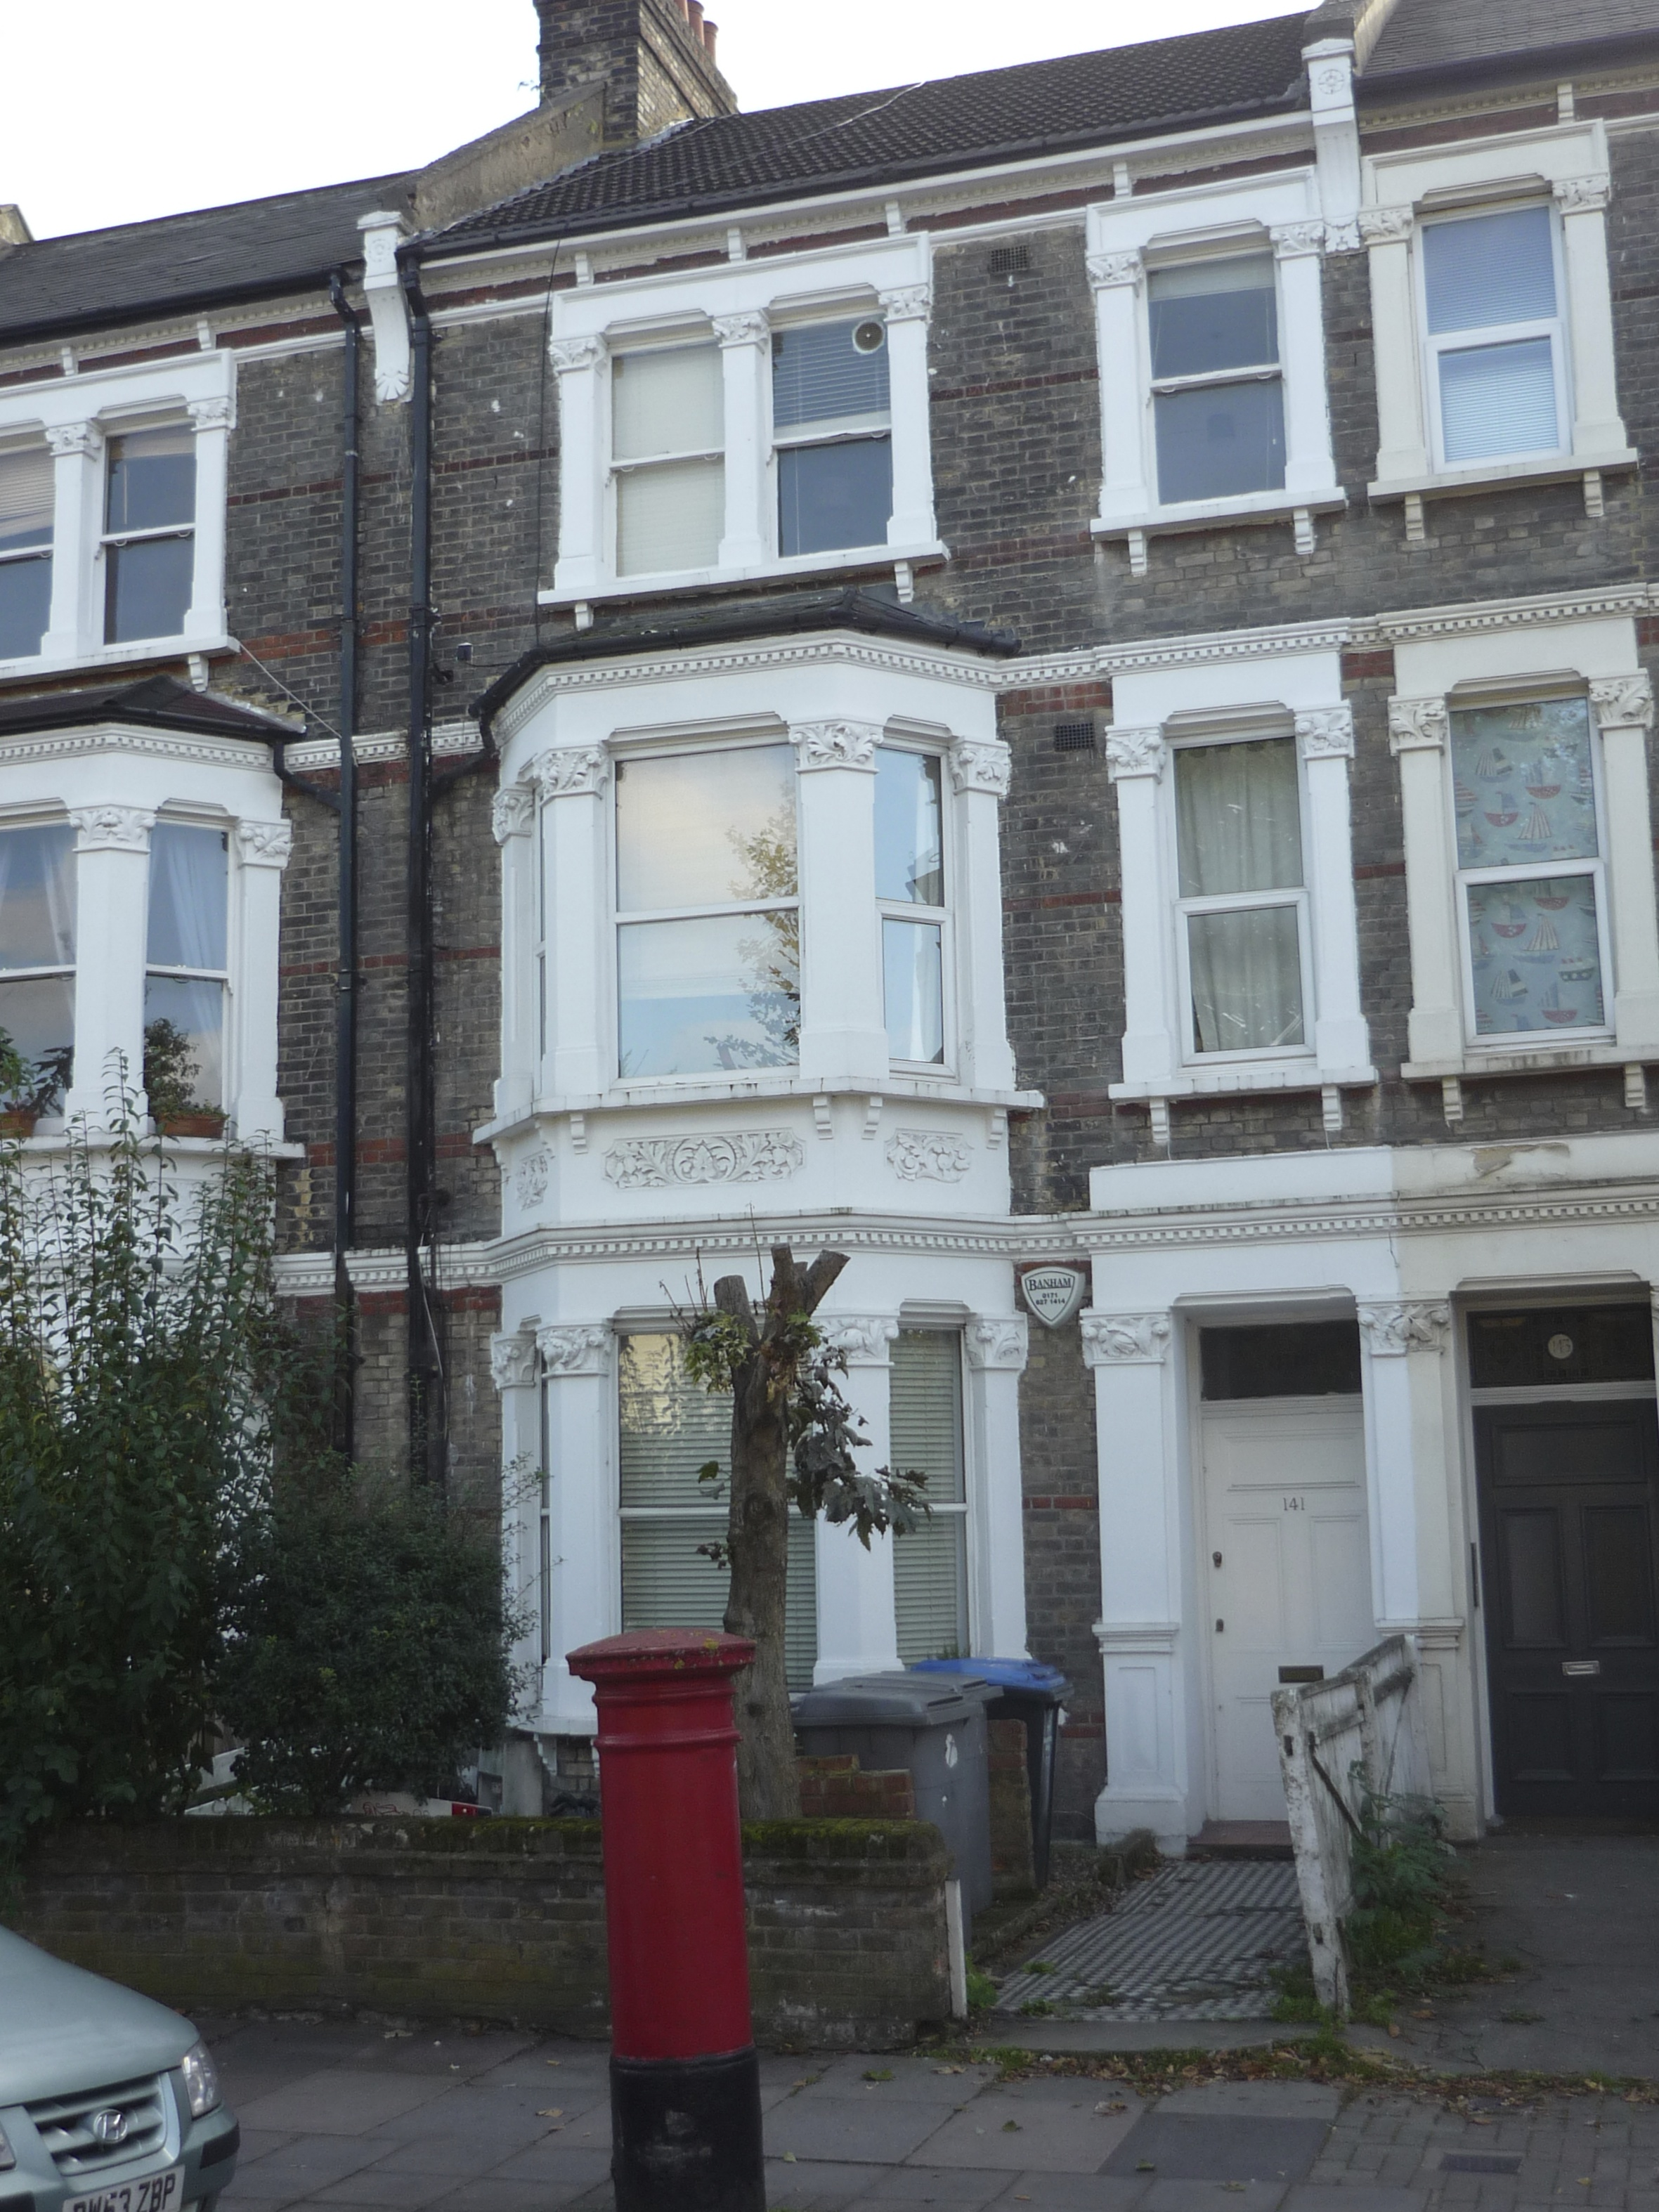 141 Harvist Road, Kilburn, London